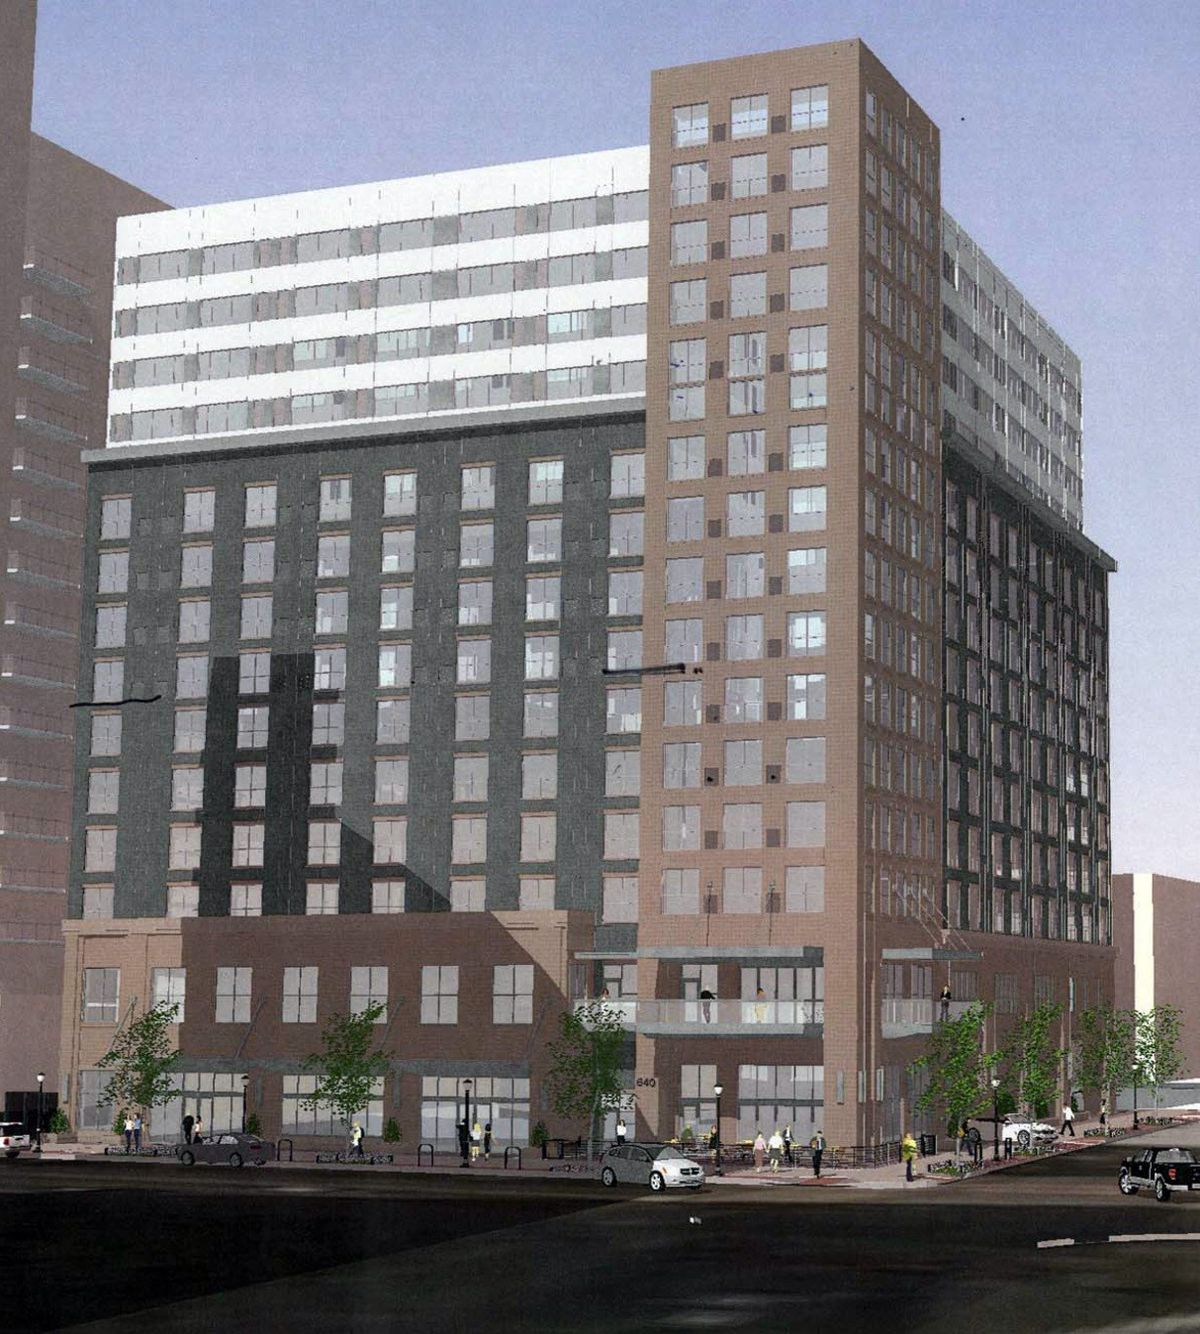 A rendering of the boring, old hotel design.